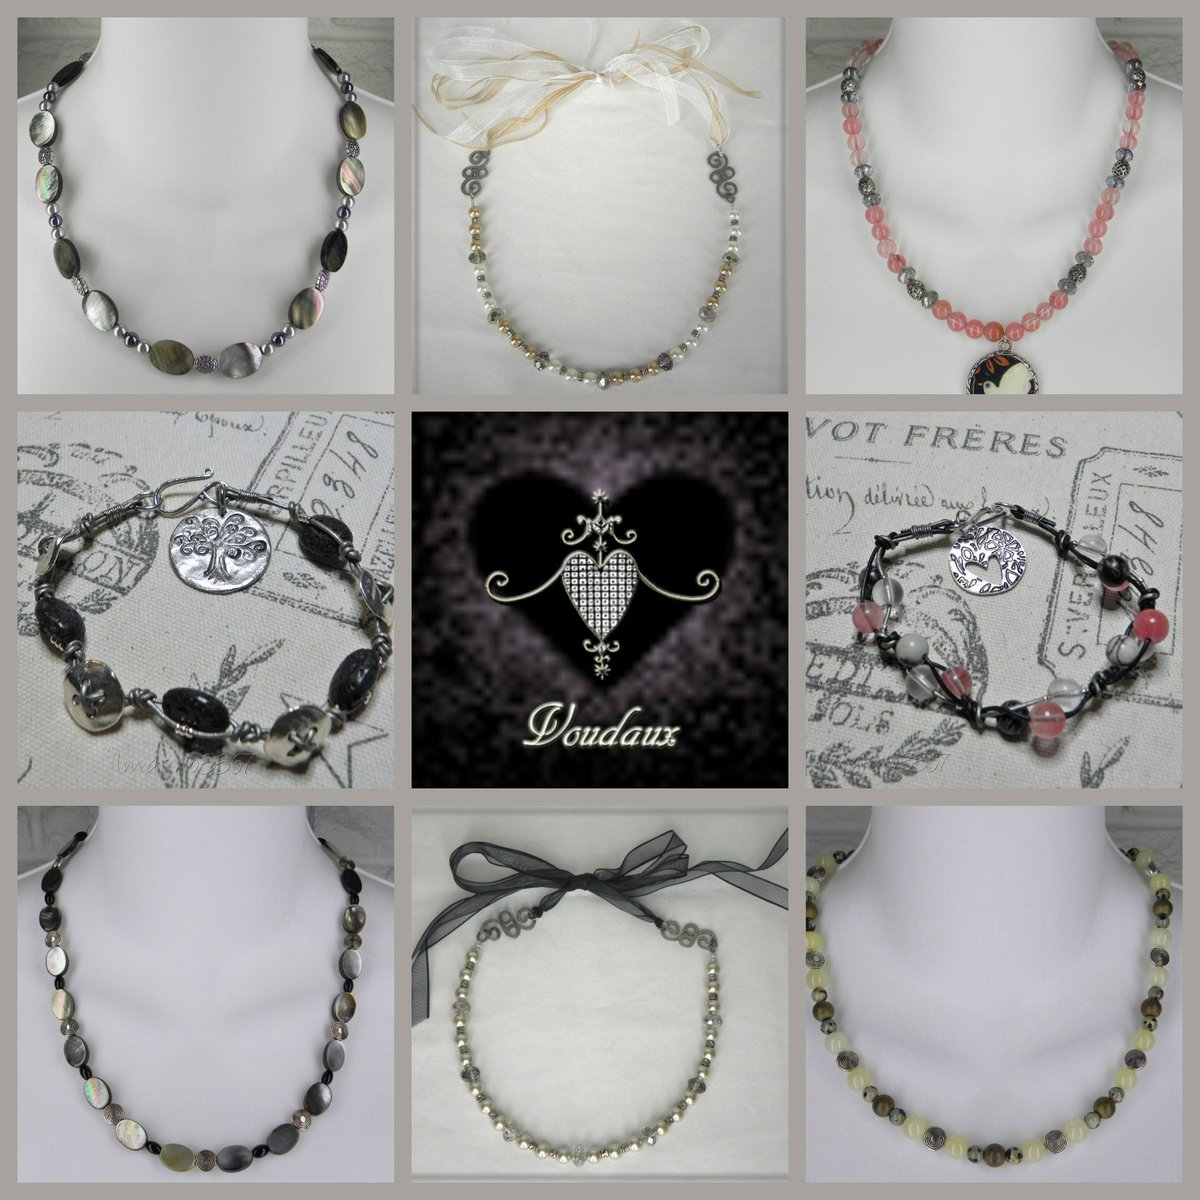 Accessorize it! #Handmade #necklaces #bracelets #earrings.  http:// tinyurl.com/z4su4ul  &nbsp;   #wahm #ebay #jewelry #accessories #giftsforher #GiftIdeas<br>http://pic.twitter.com/upWTITbCre